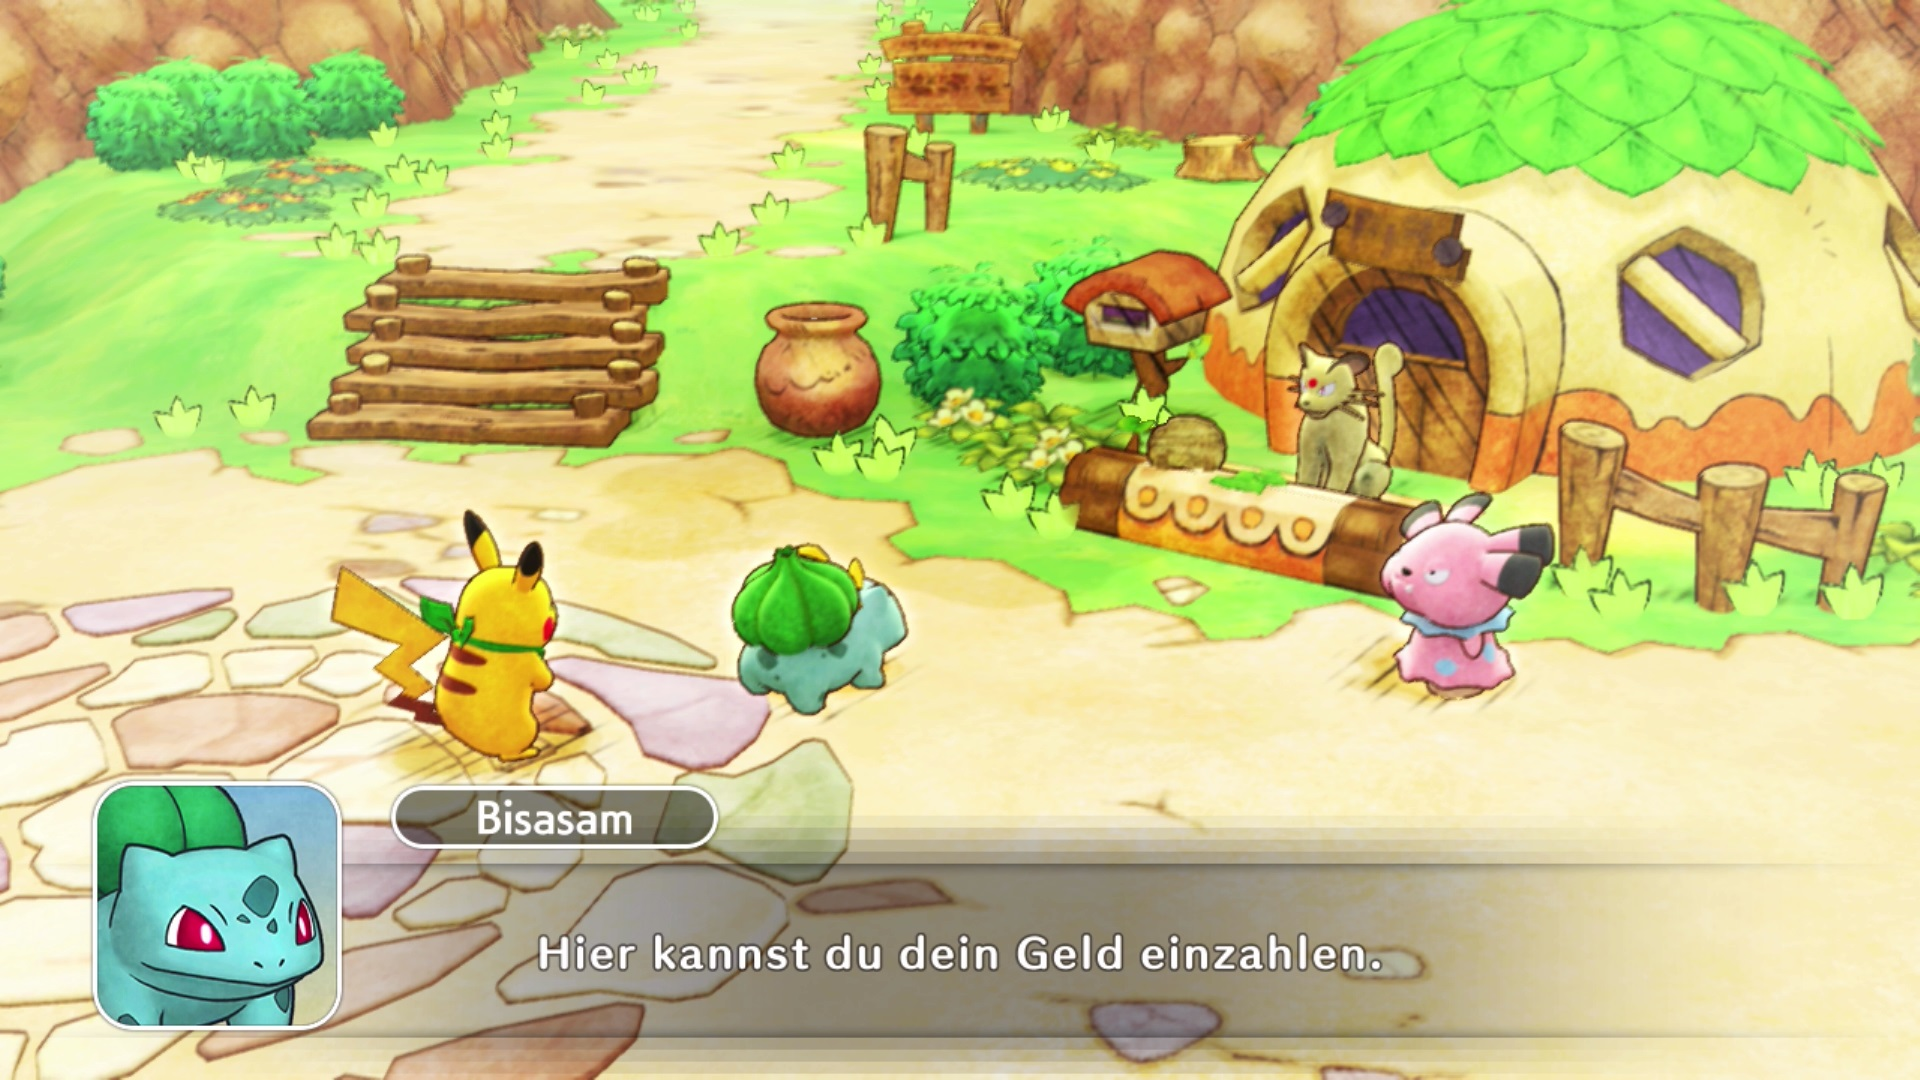 NSwitch_PokemonMysteryDungeon_23_DE.jpg